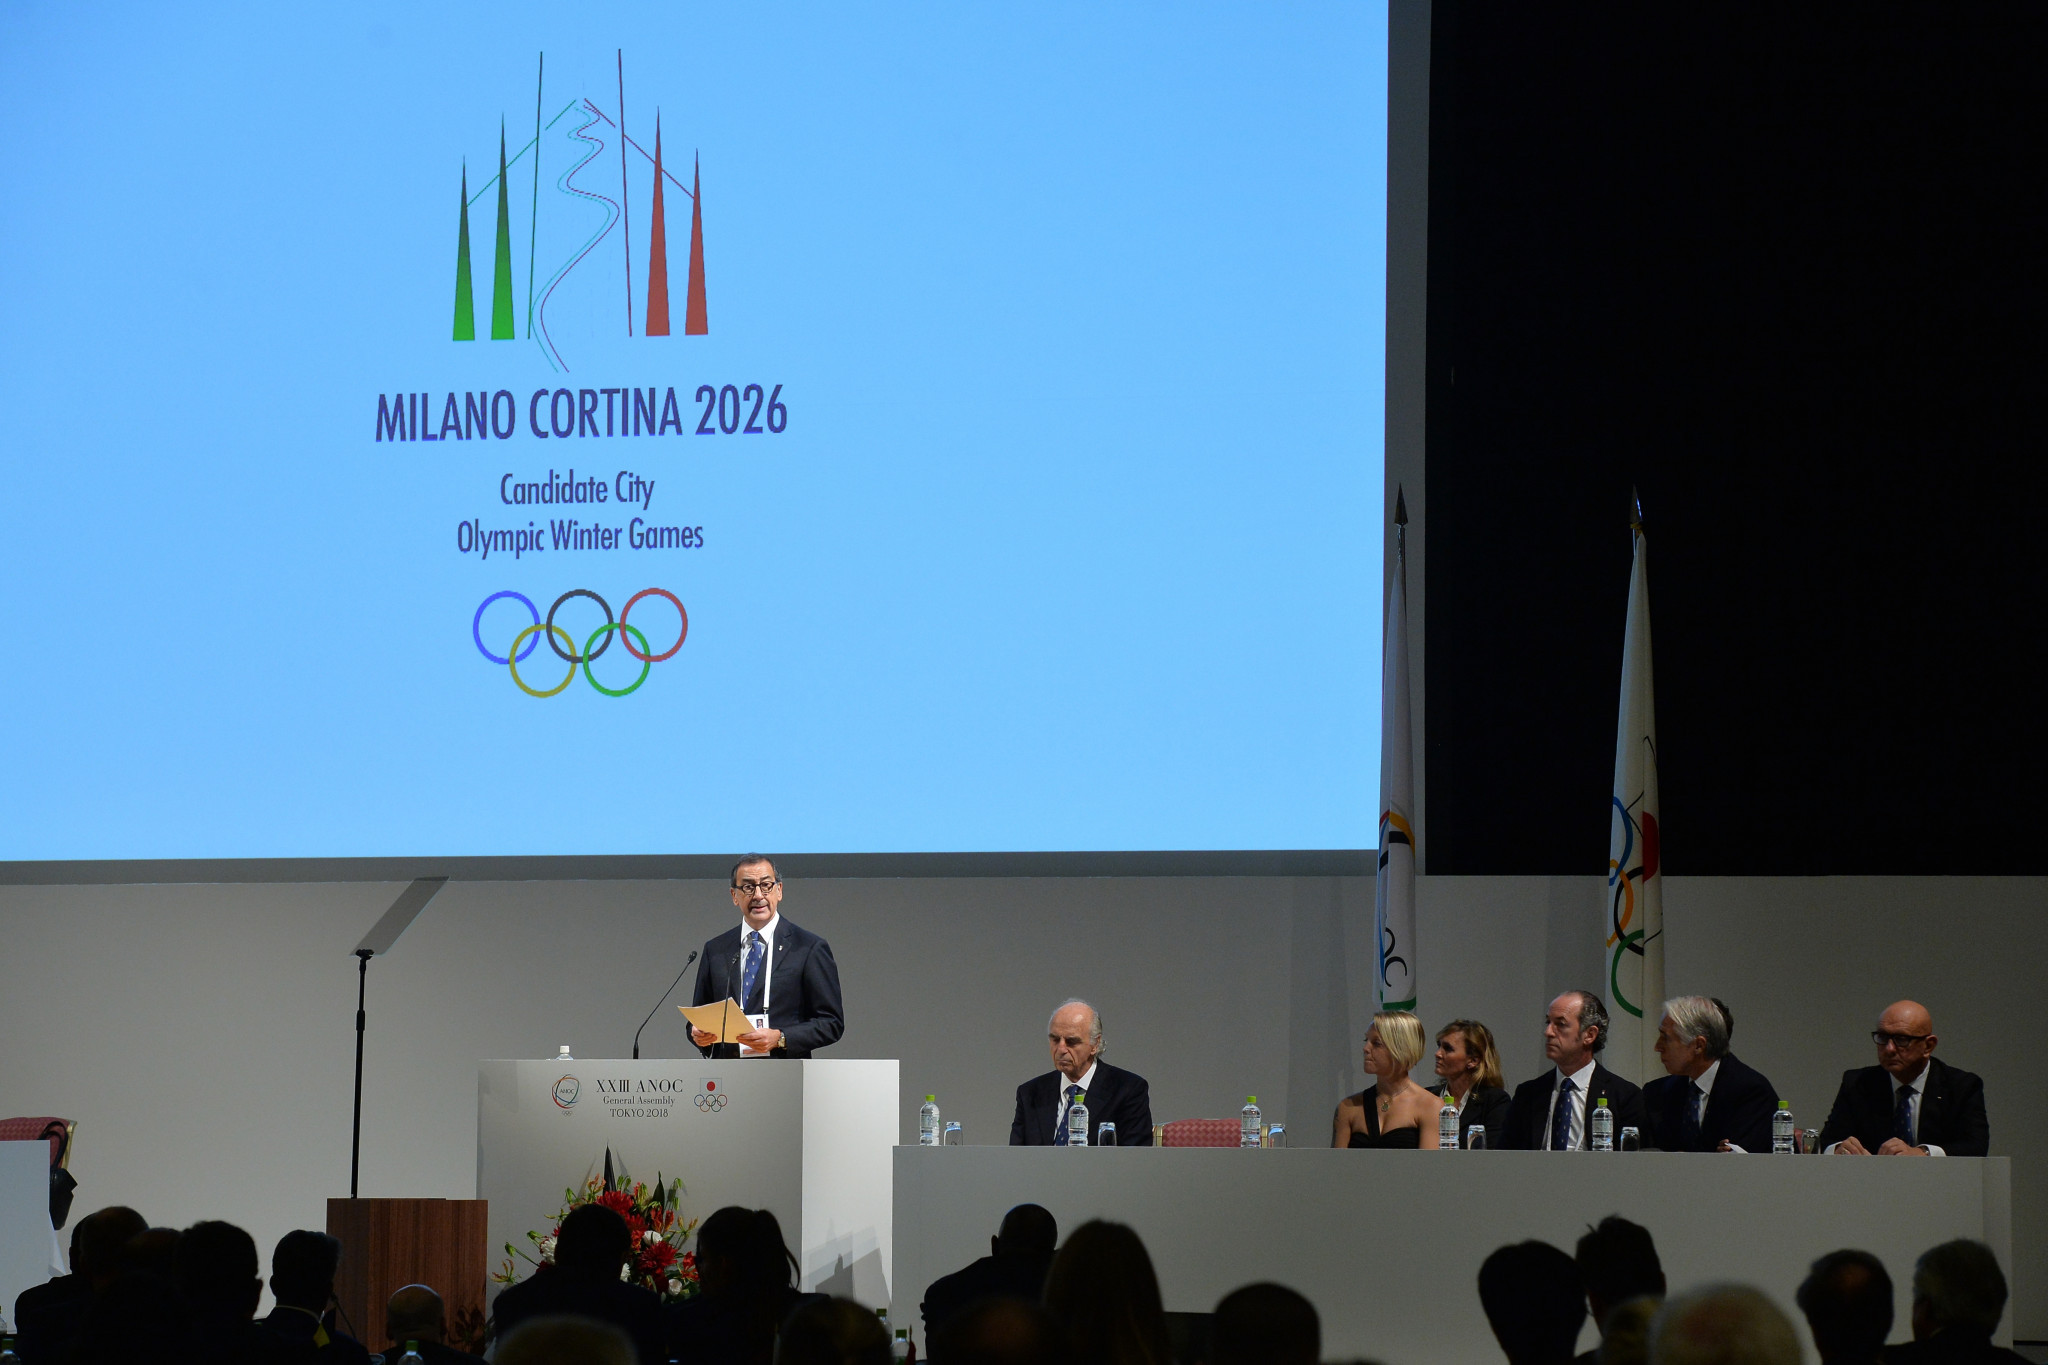 Should Milan-Cortina be awarded the 2026 Winter Olympics and Paralympics, Italy intends to enact an Olympic Law by the end of 2019 ©Getty Images